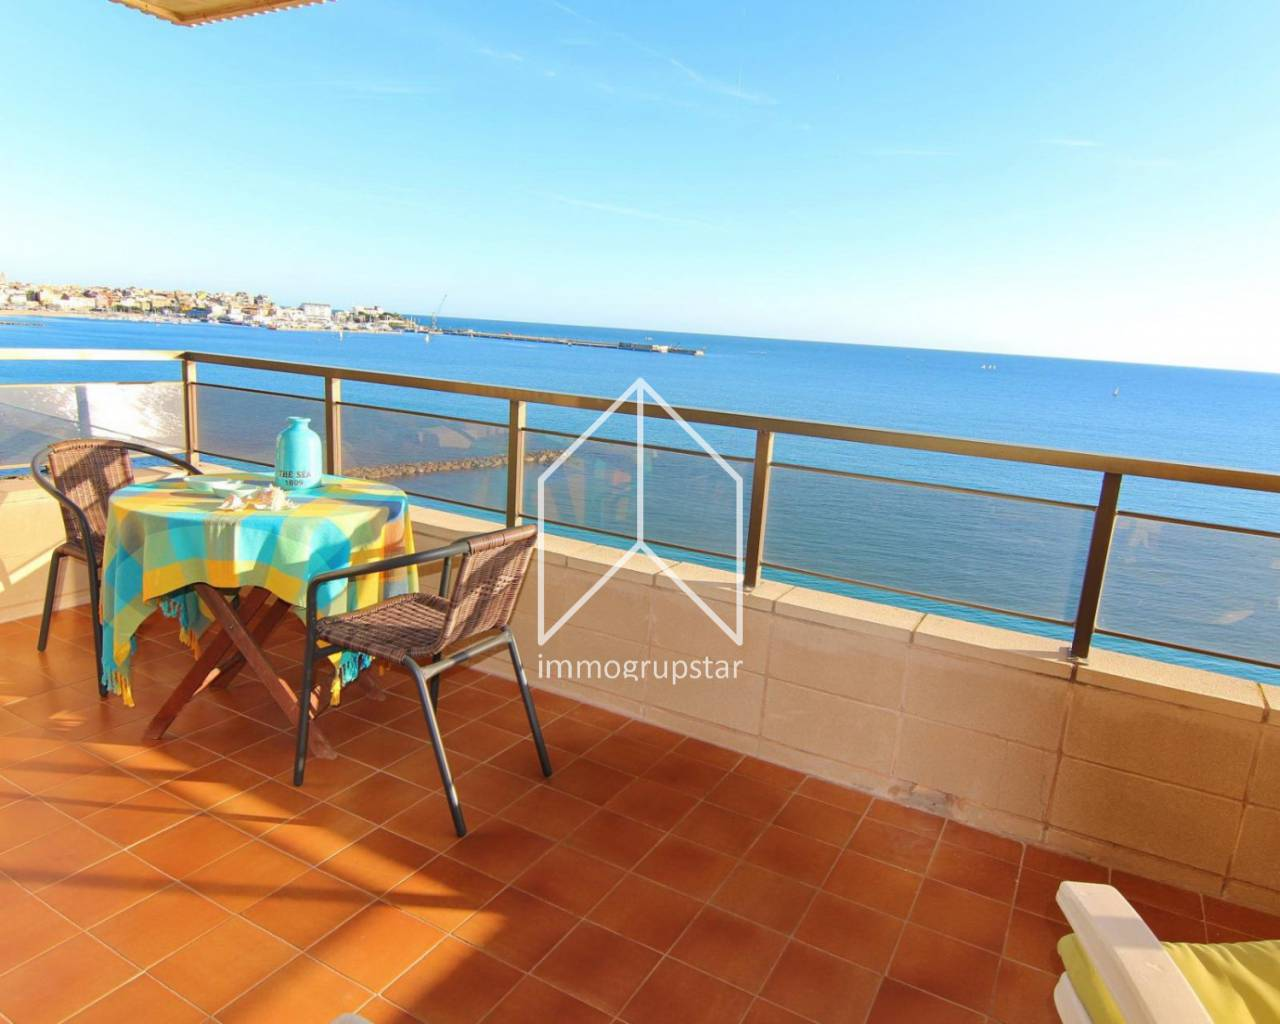 Appartement - Tweede hands - Sant Antoni De Calonge - PRIMERA LINEA DE MAR